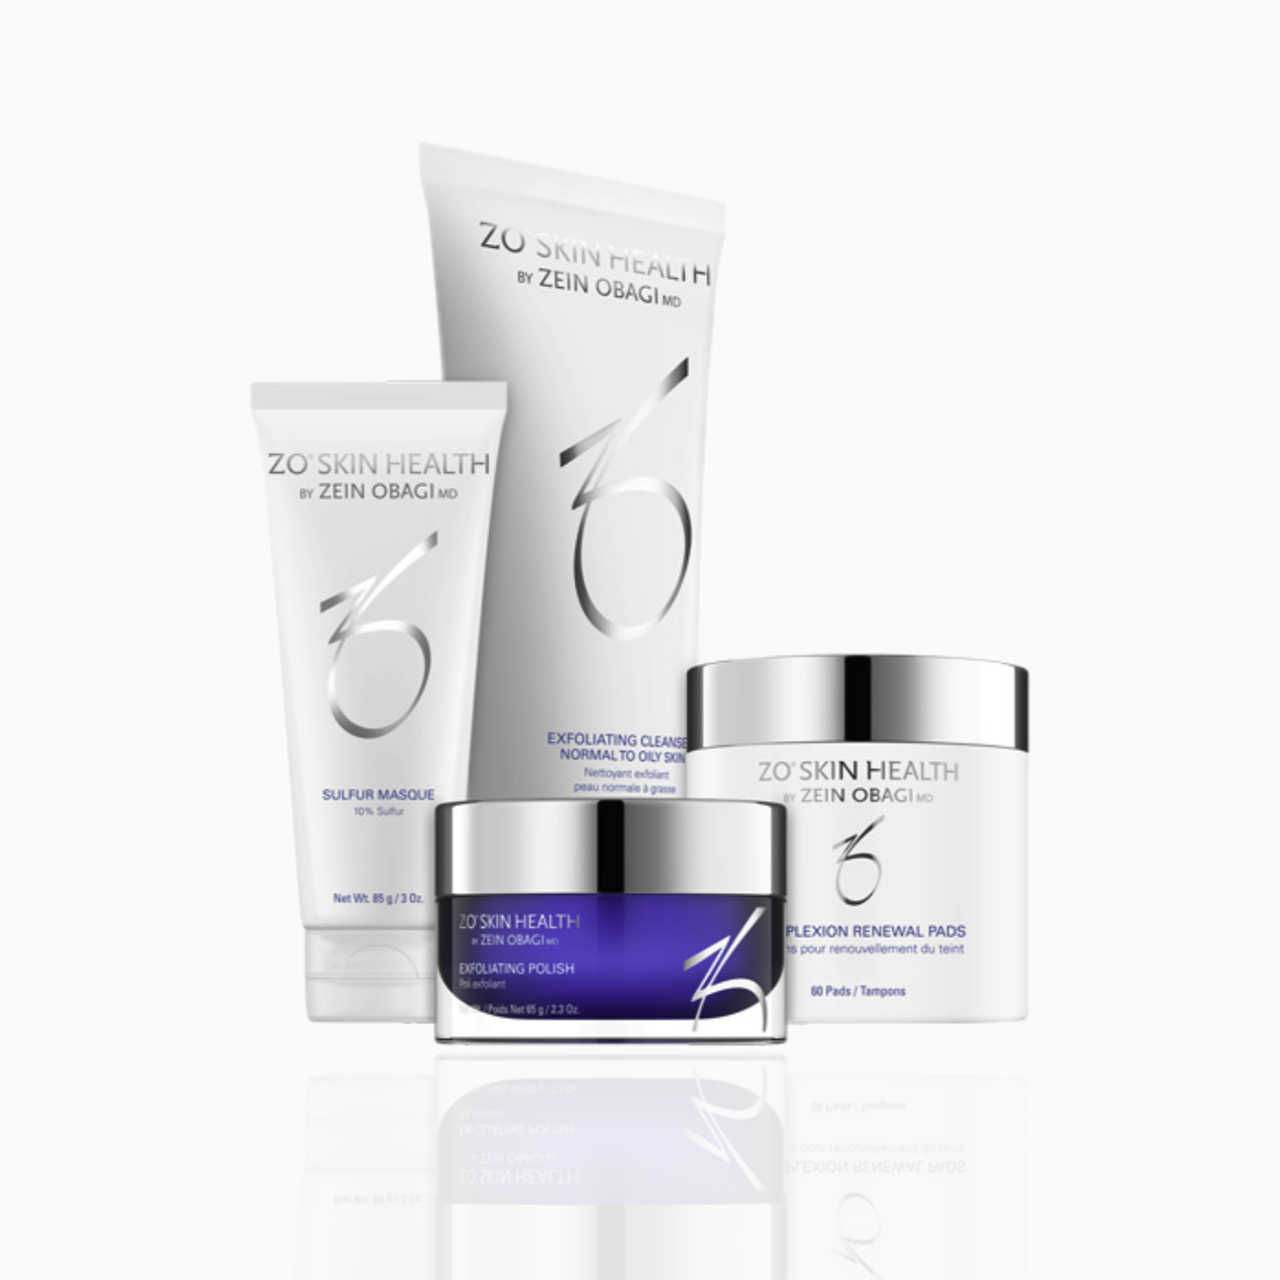 ZO Skin Health Complexion Clearing Program